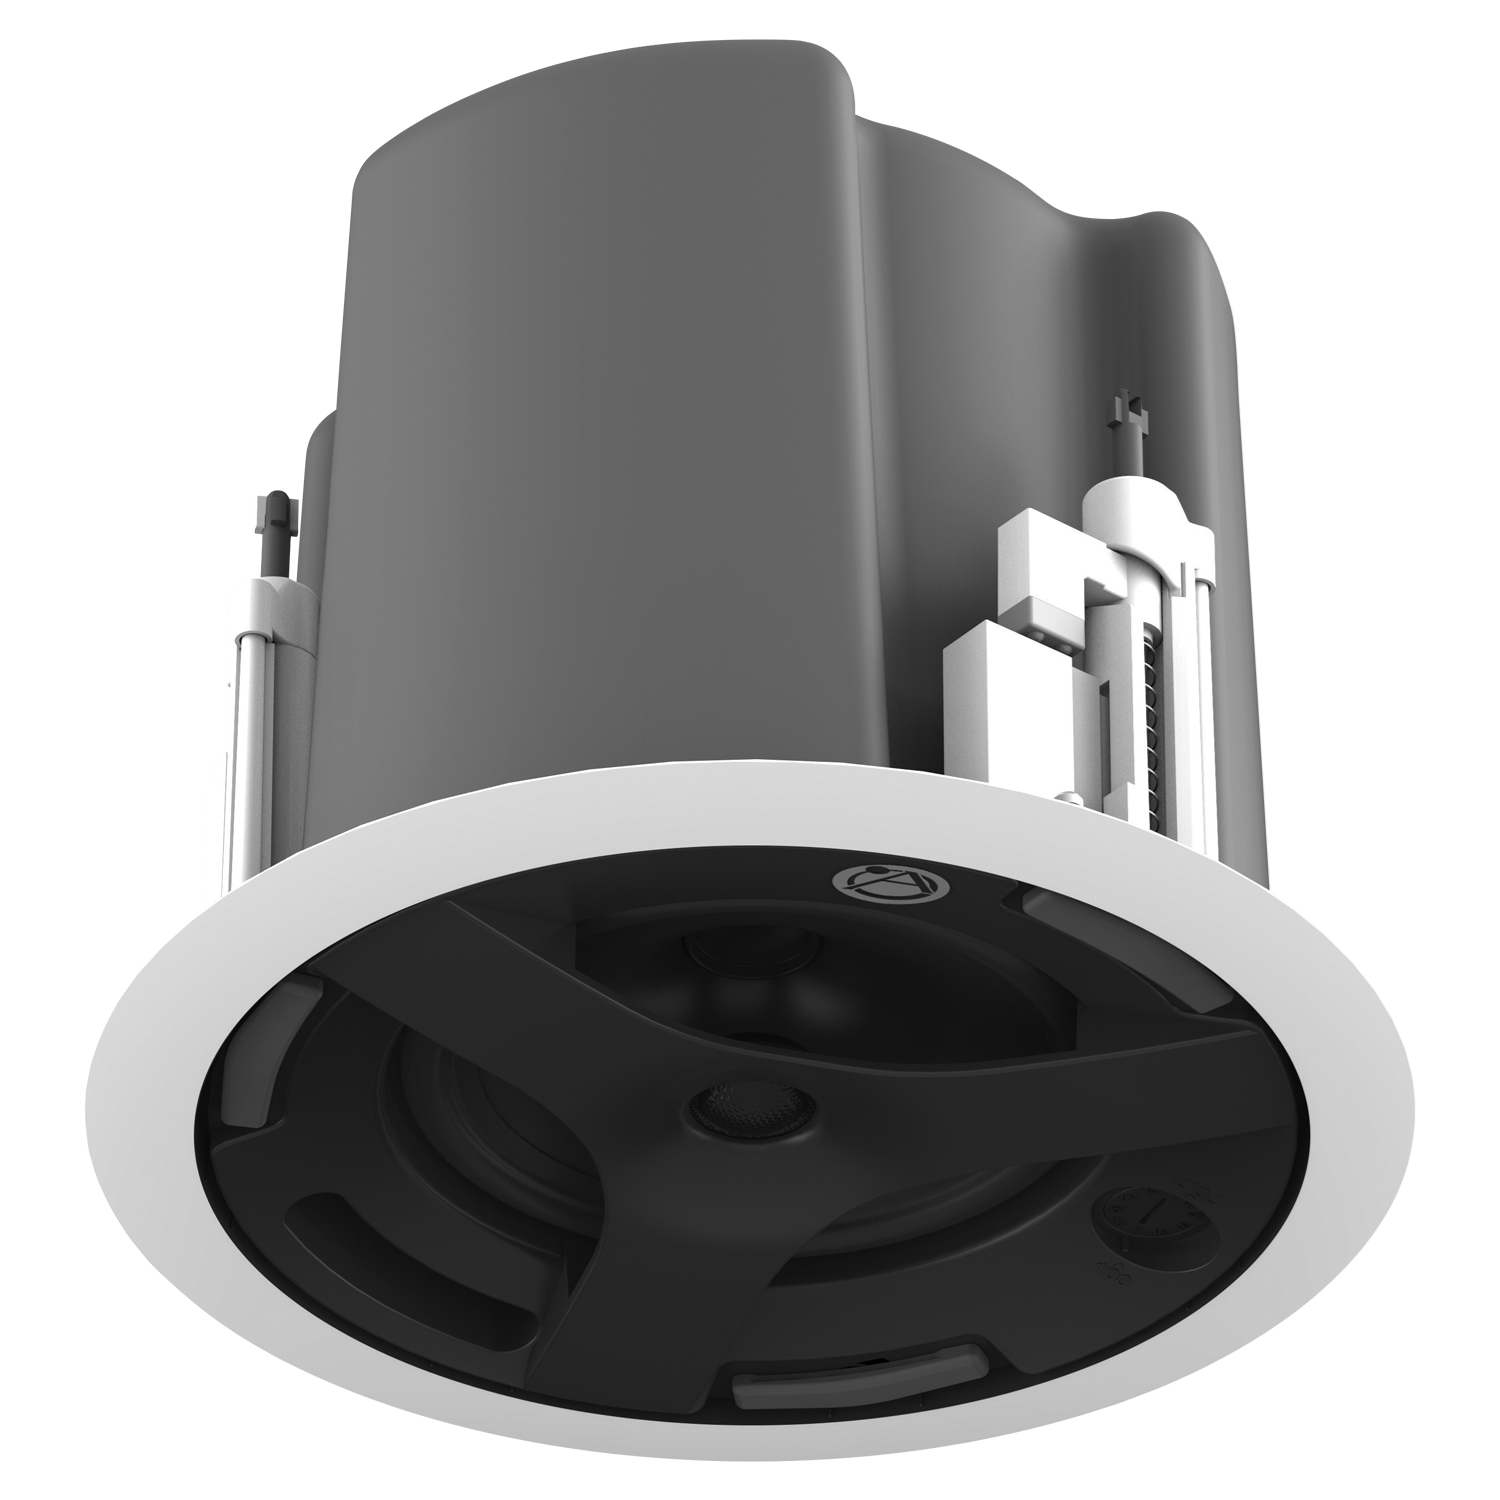 "6.5"" Coaxial In-Ceiling Speaker with 32-Watt 70V/100V Transformer, Ported  Enclosure, and Safety First Mounting System"